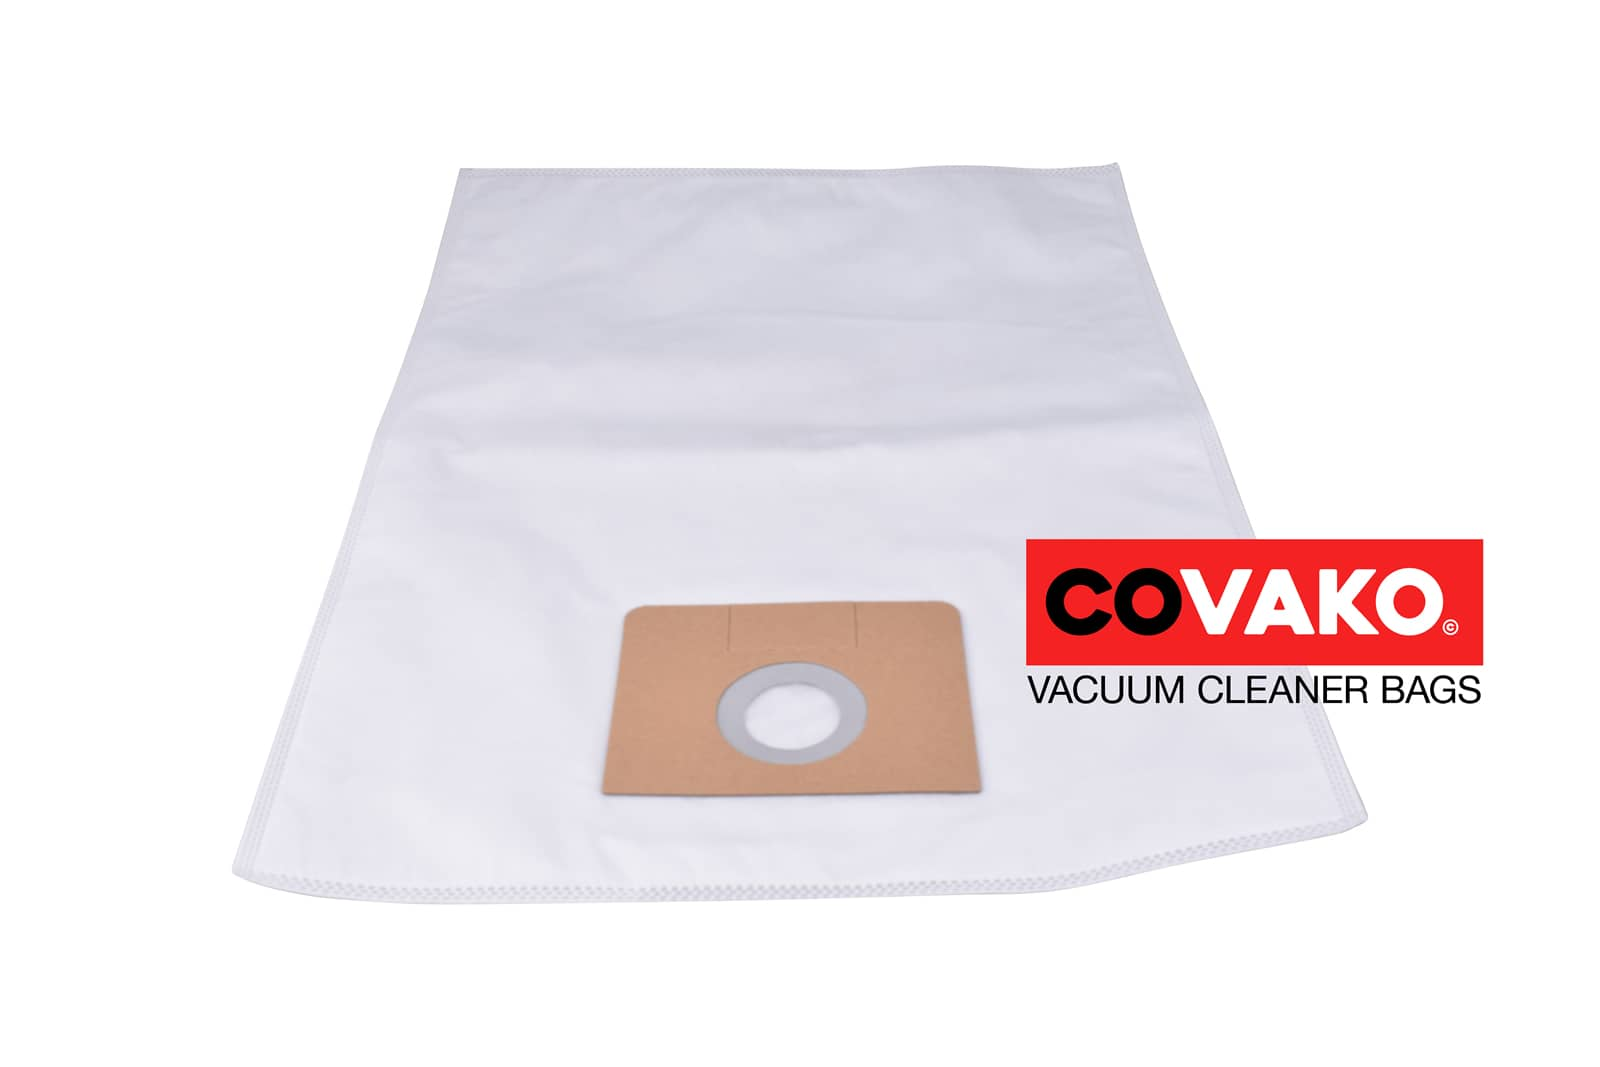 Bosch Gas 35 L AFC / Synthesis - Bosch vacuum cleaner bags